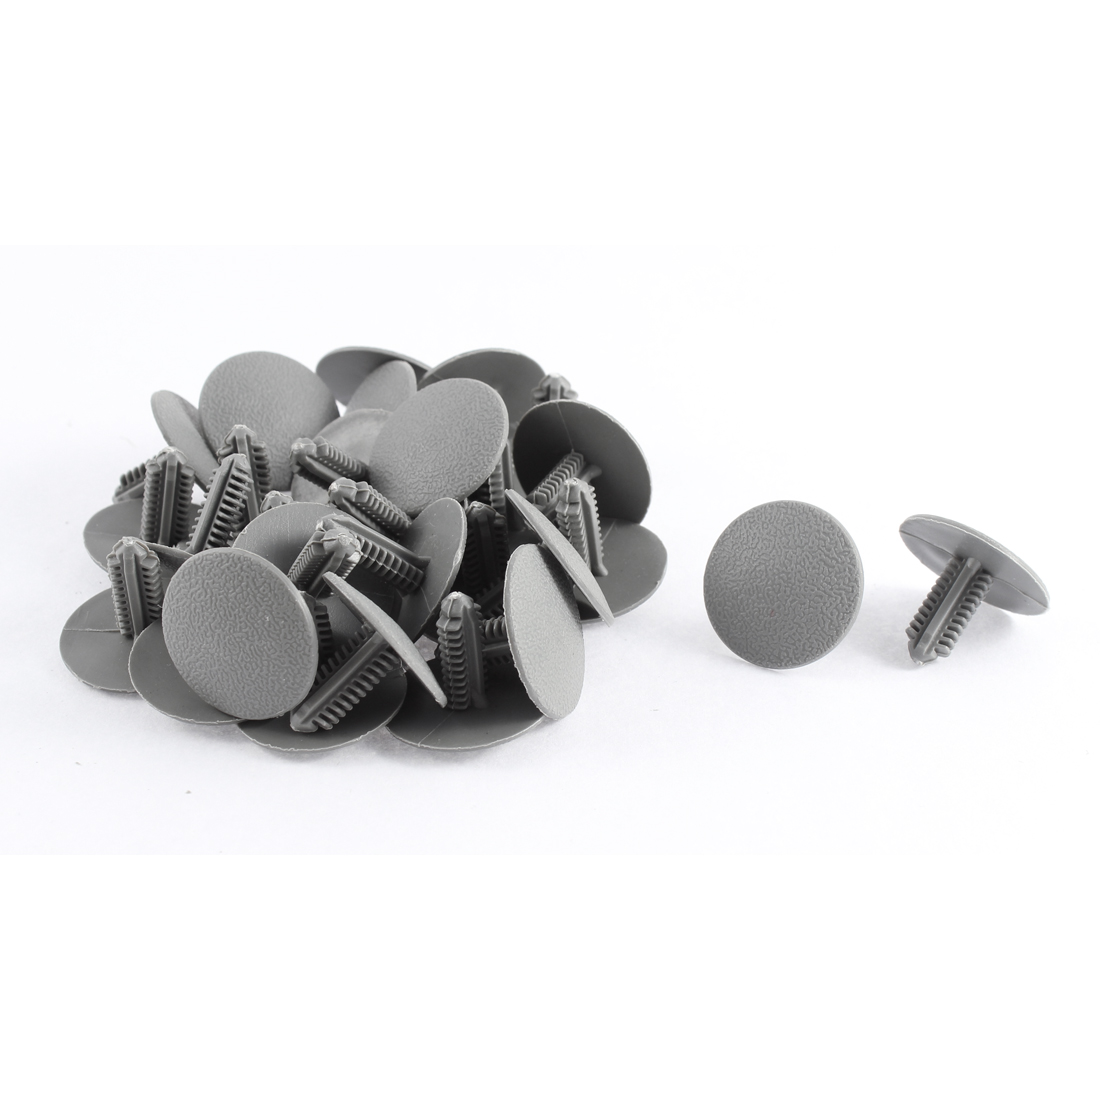 30pcs 7.5mm Hole Dia Gray Car Auto Fairing Trim Plastic Screw Fit Rivet Clips